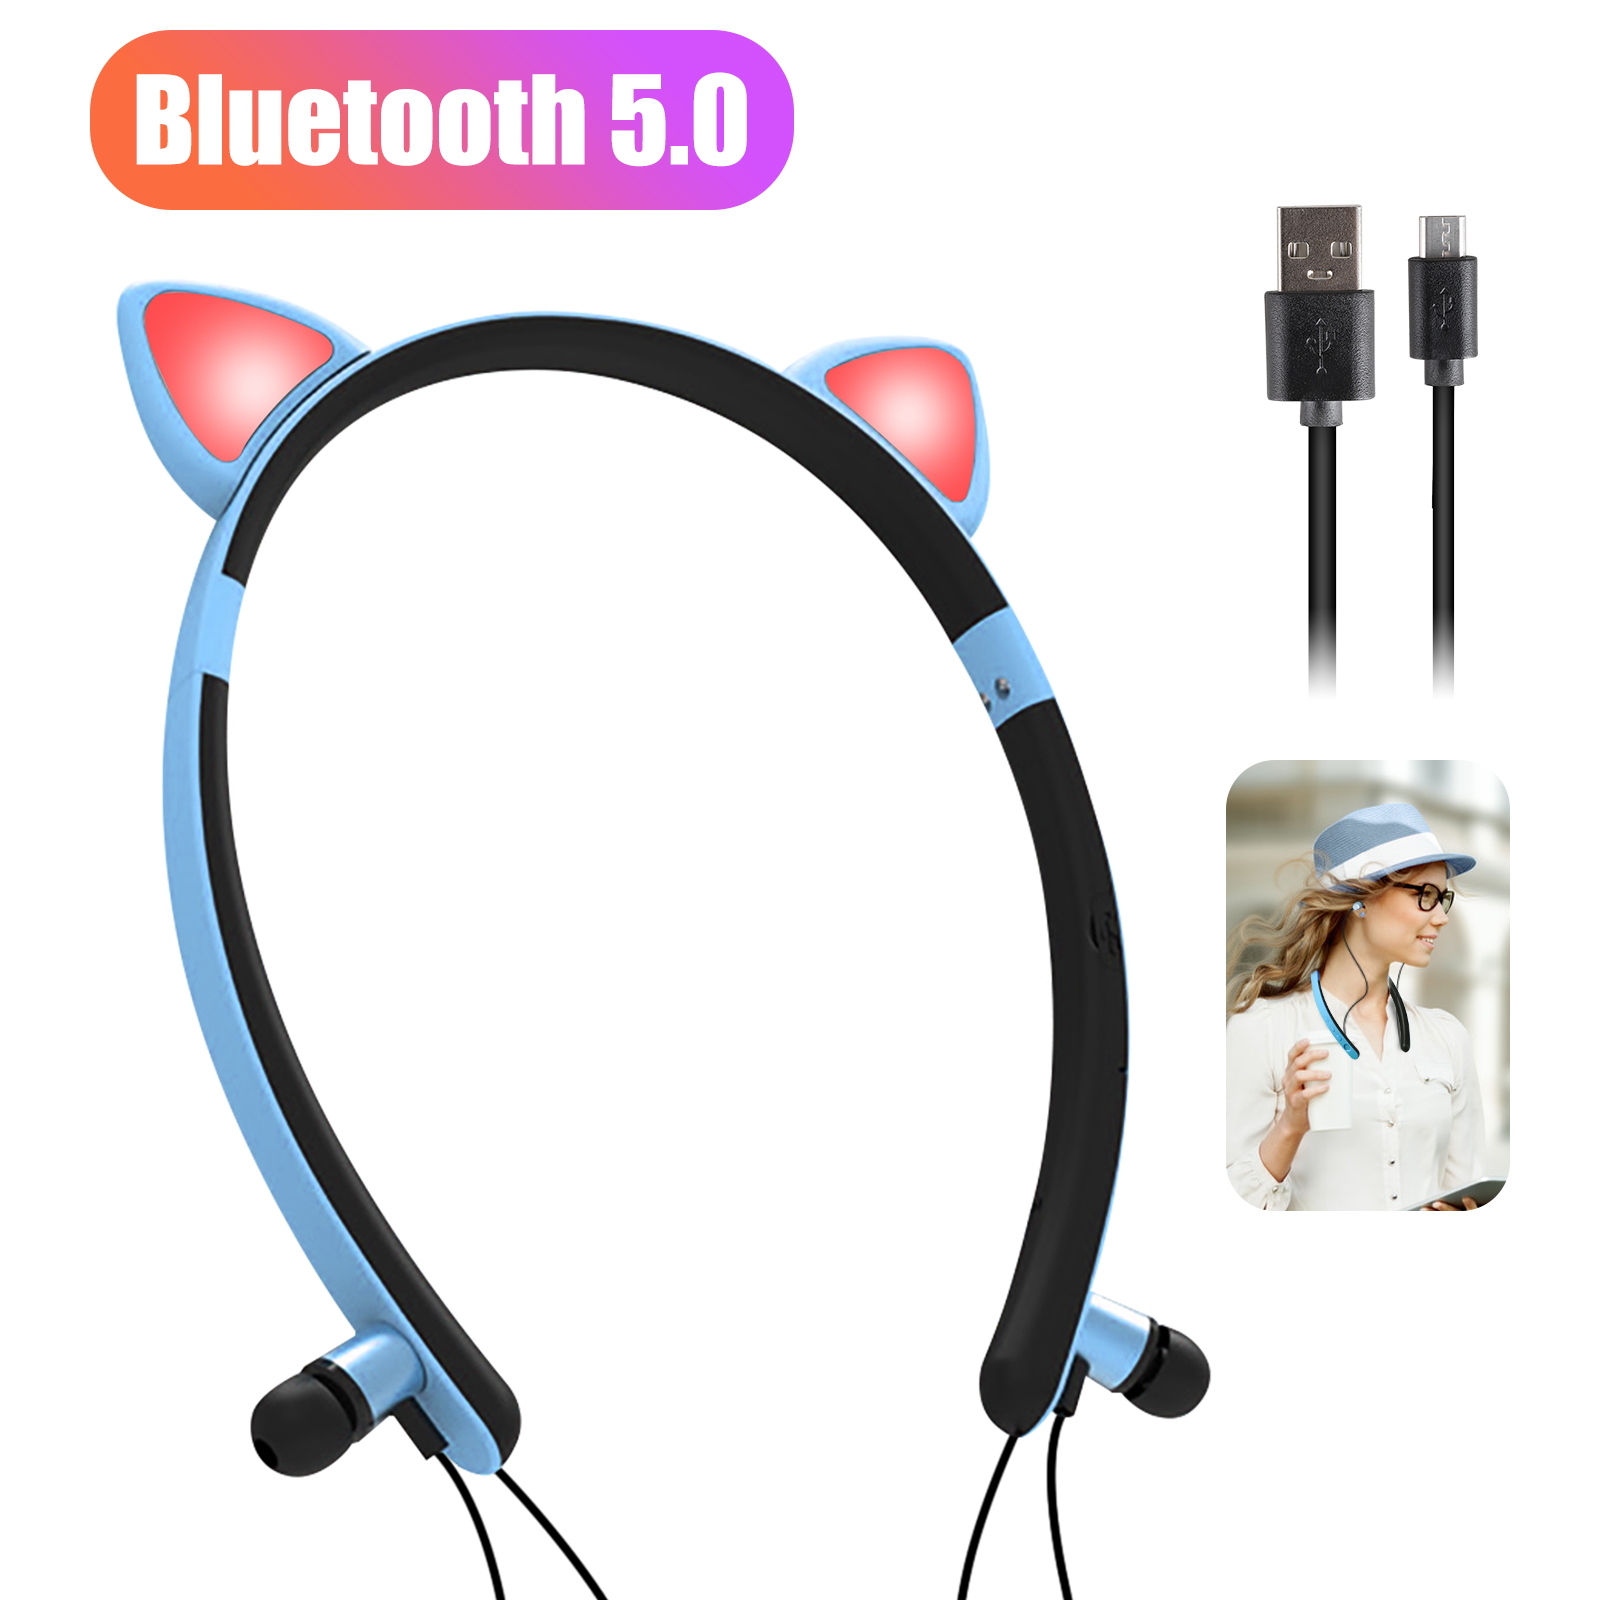 Bluetooth Headphones Bluetooth 5 0 Wireless Cat Ear Headset With Magnetic Earbuds Sweatproof Sports Earphones With Mic Led Light In Ear Hifi Stereo Noise Cancelling Wireless Earbuds Blue Pink Walmart Com Walmart Com